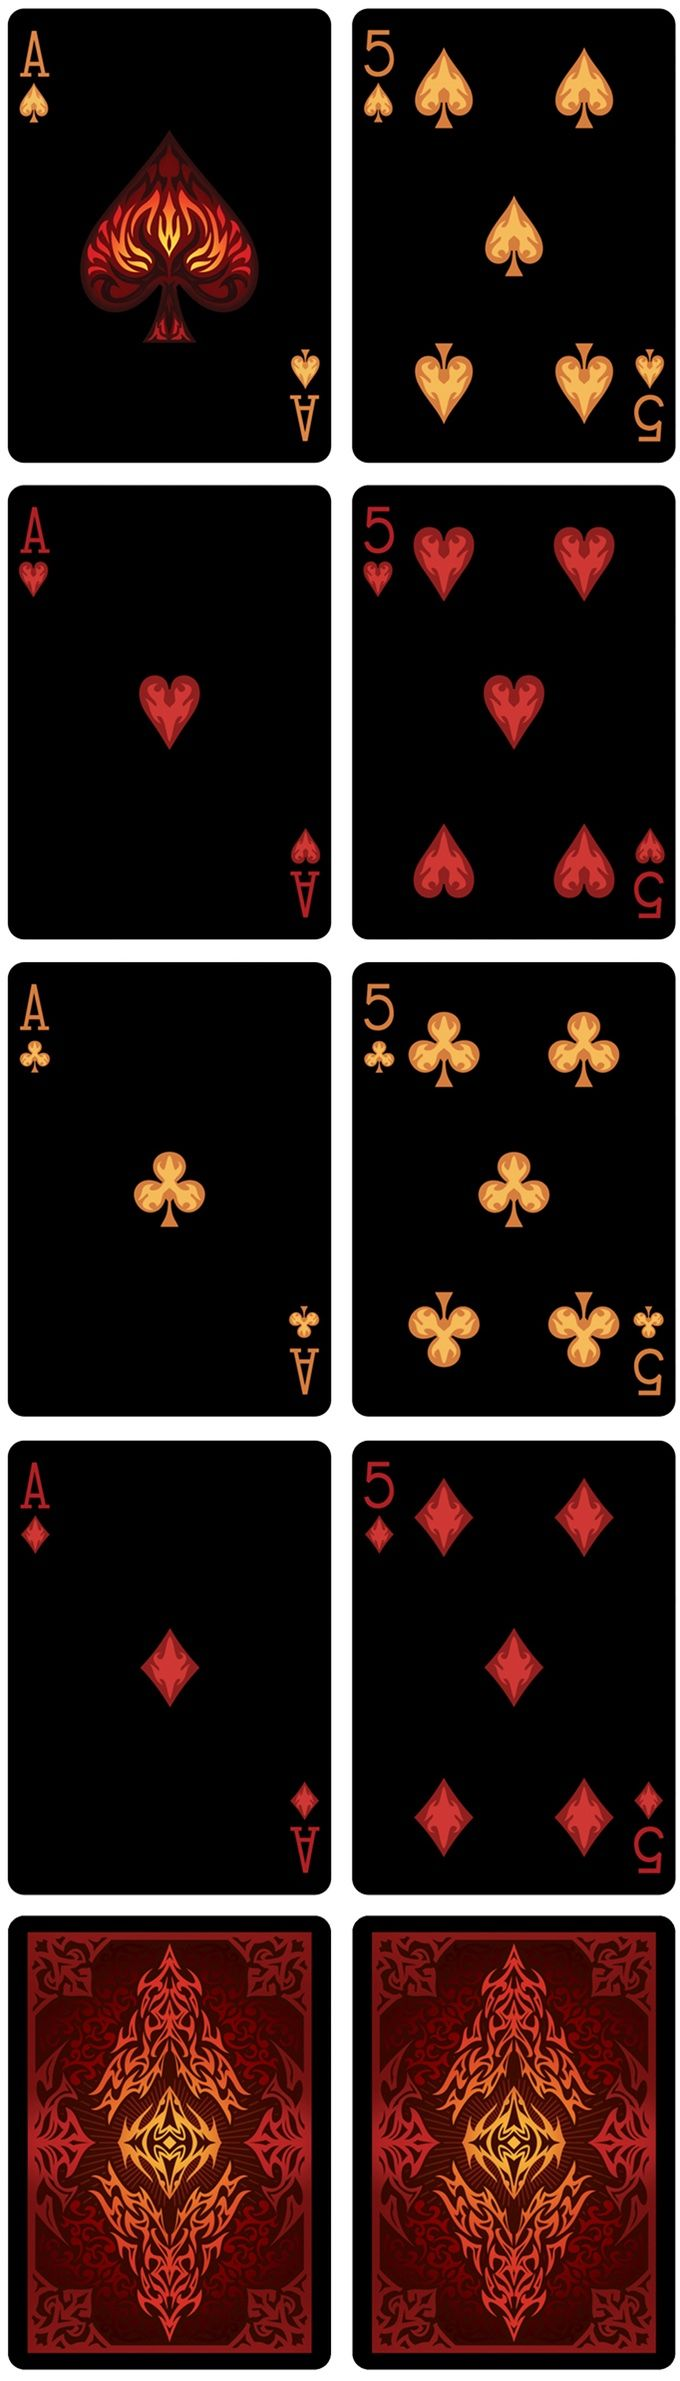 """Bicycle Natural Disasters """"Volcano"""" Playing Cards by Collectable Playing Cards — Kickstarter"""